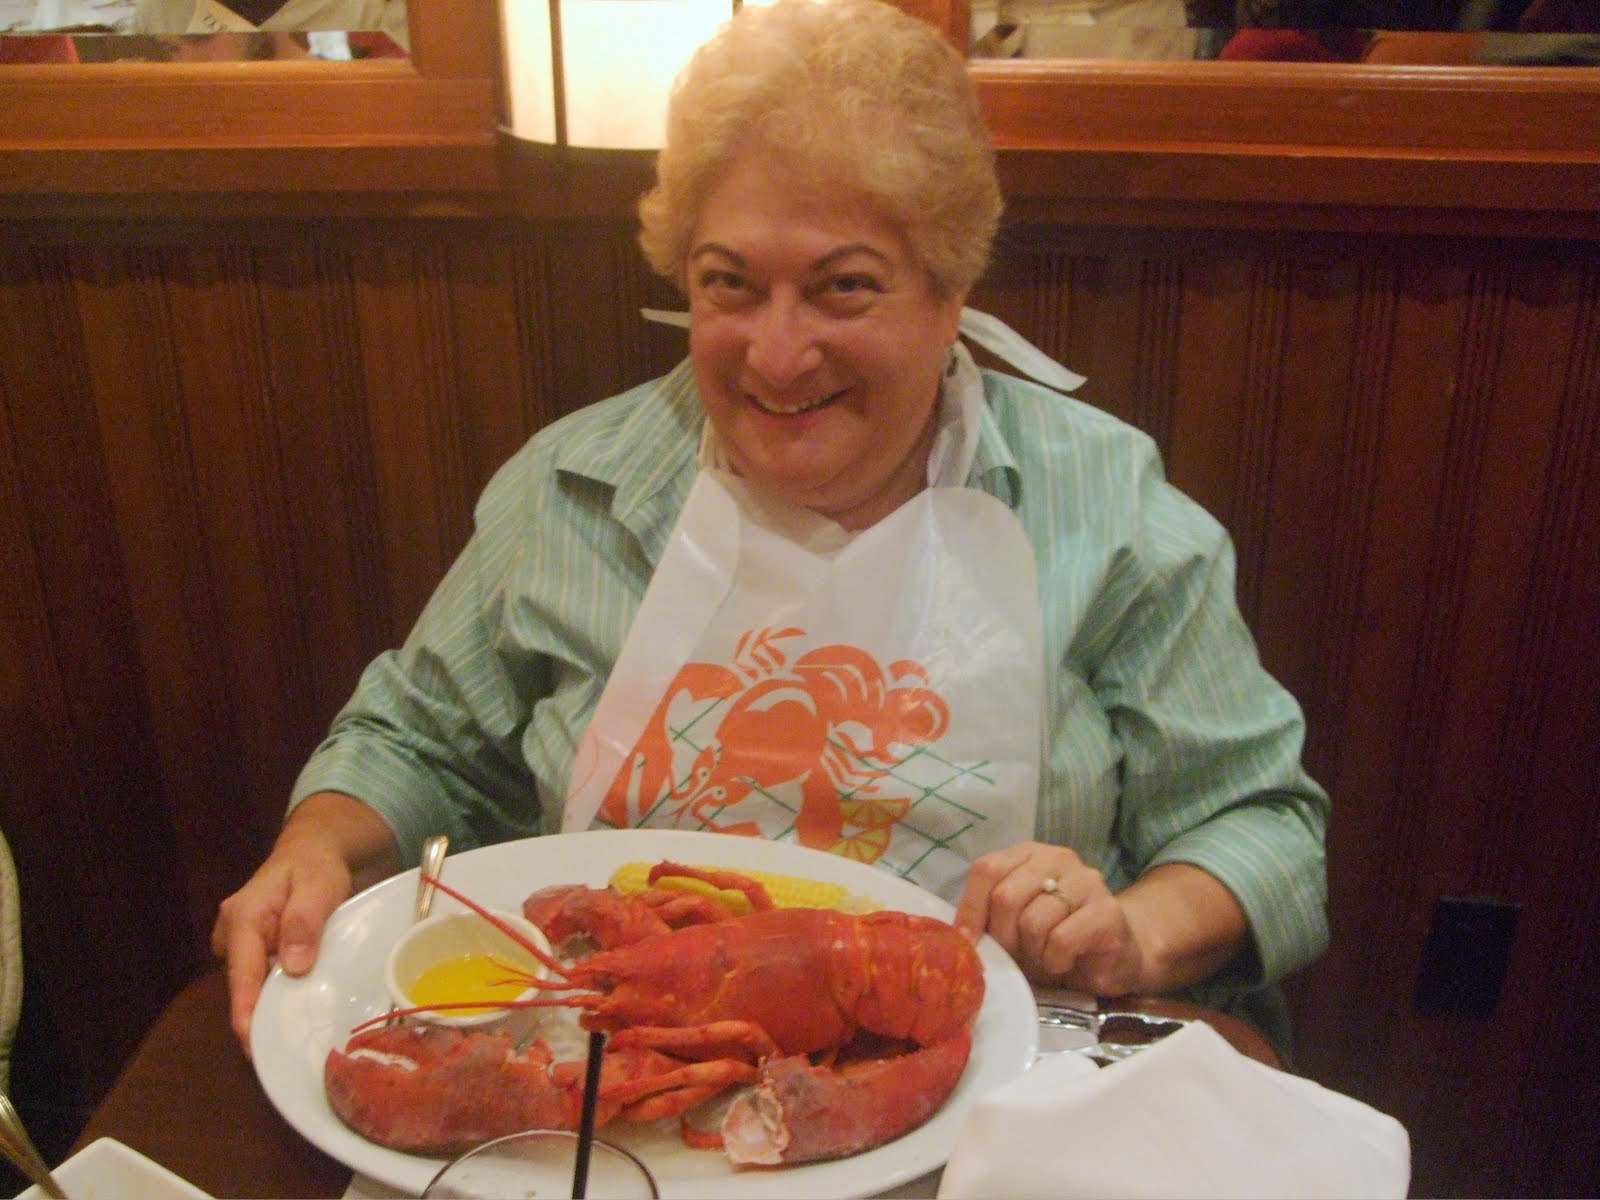 merle's whirls let them eat lobster